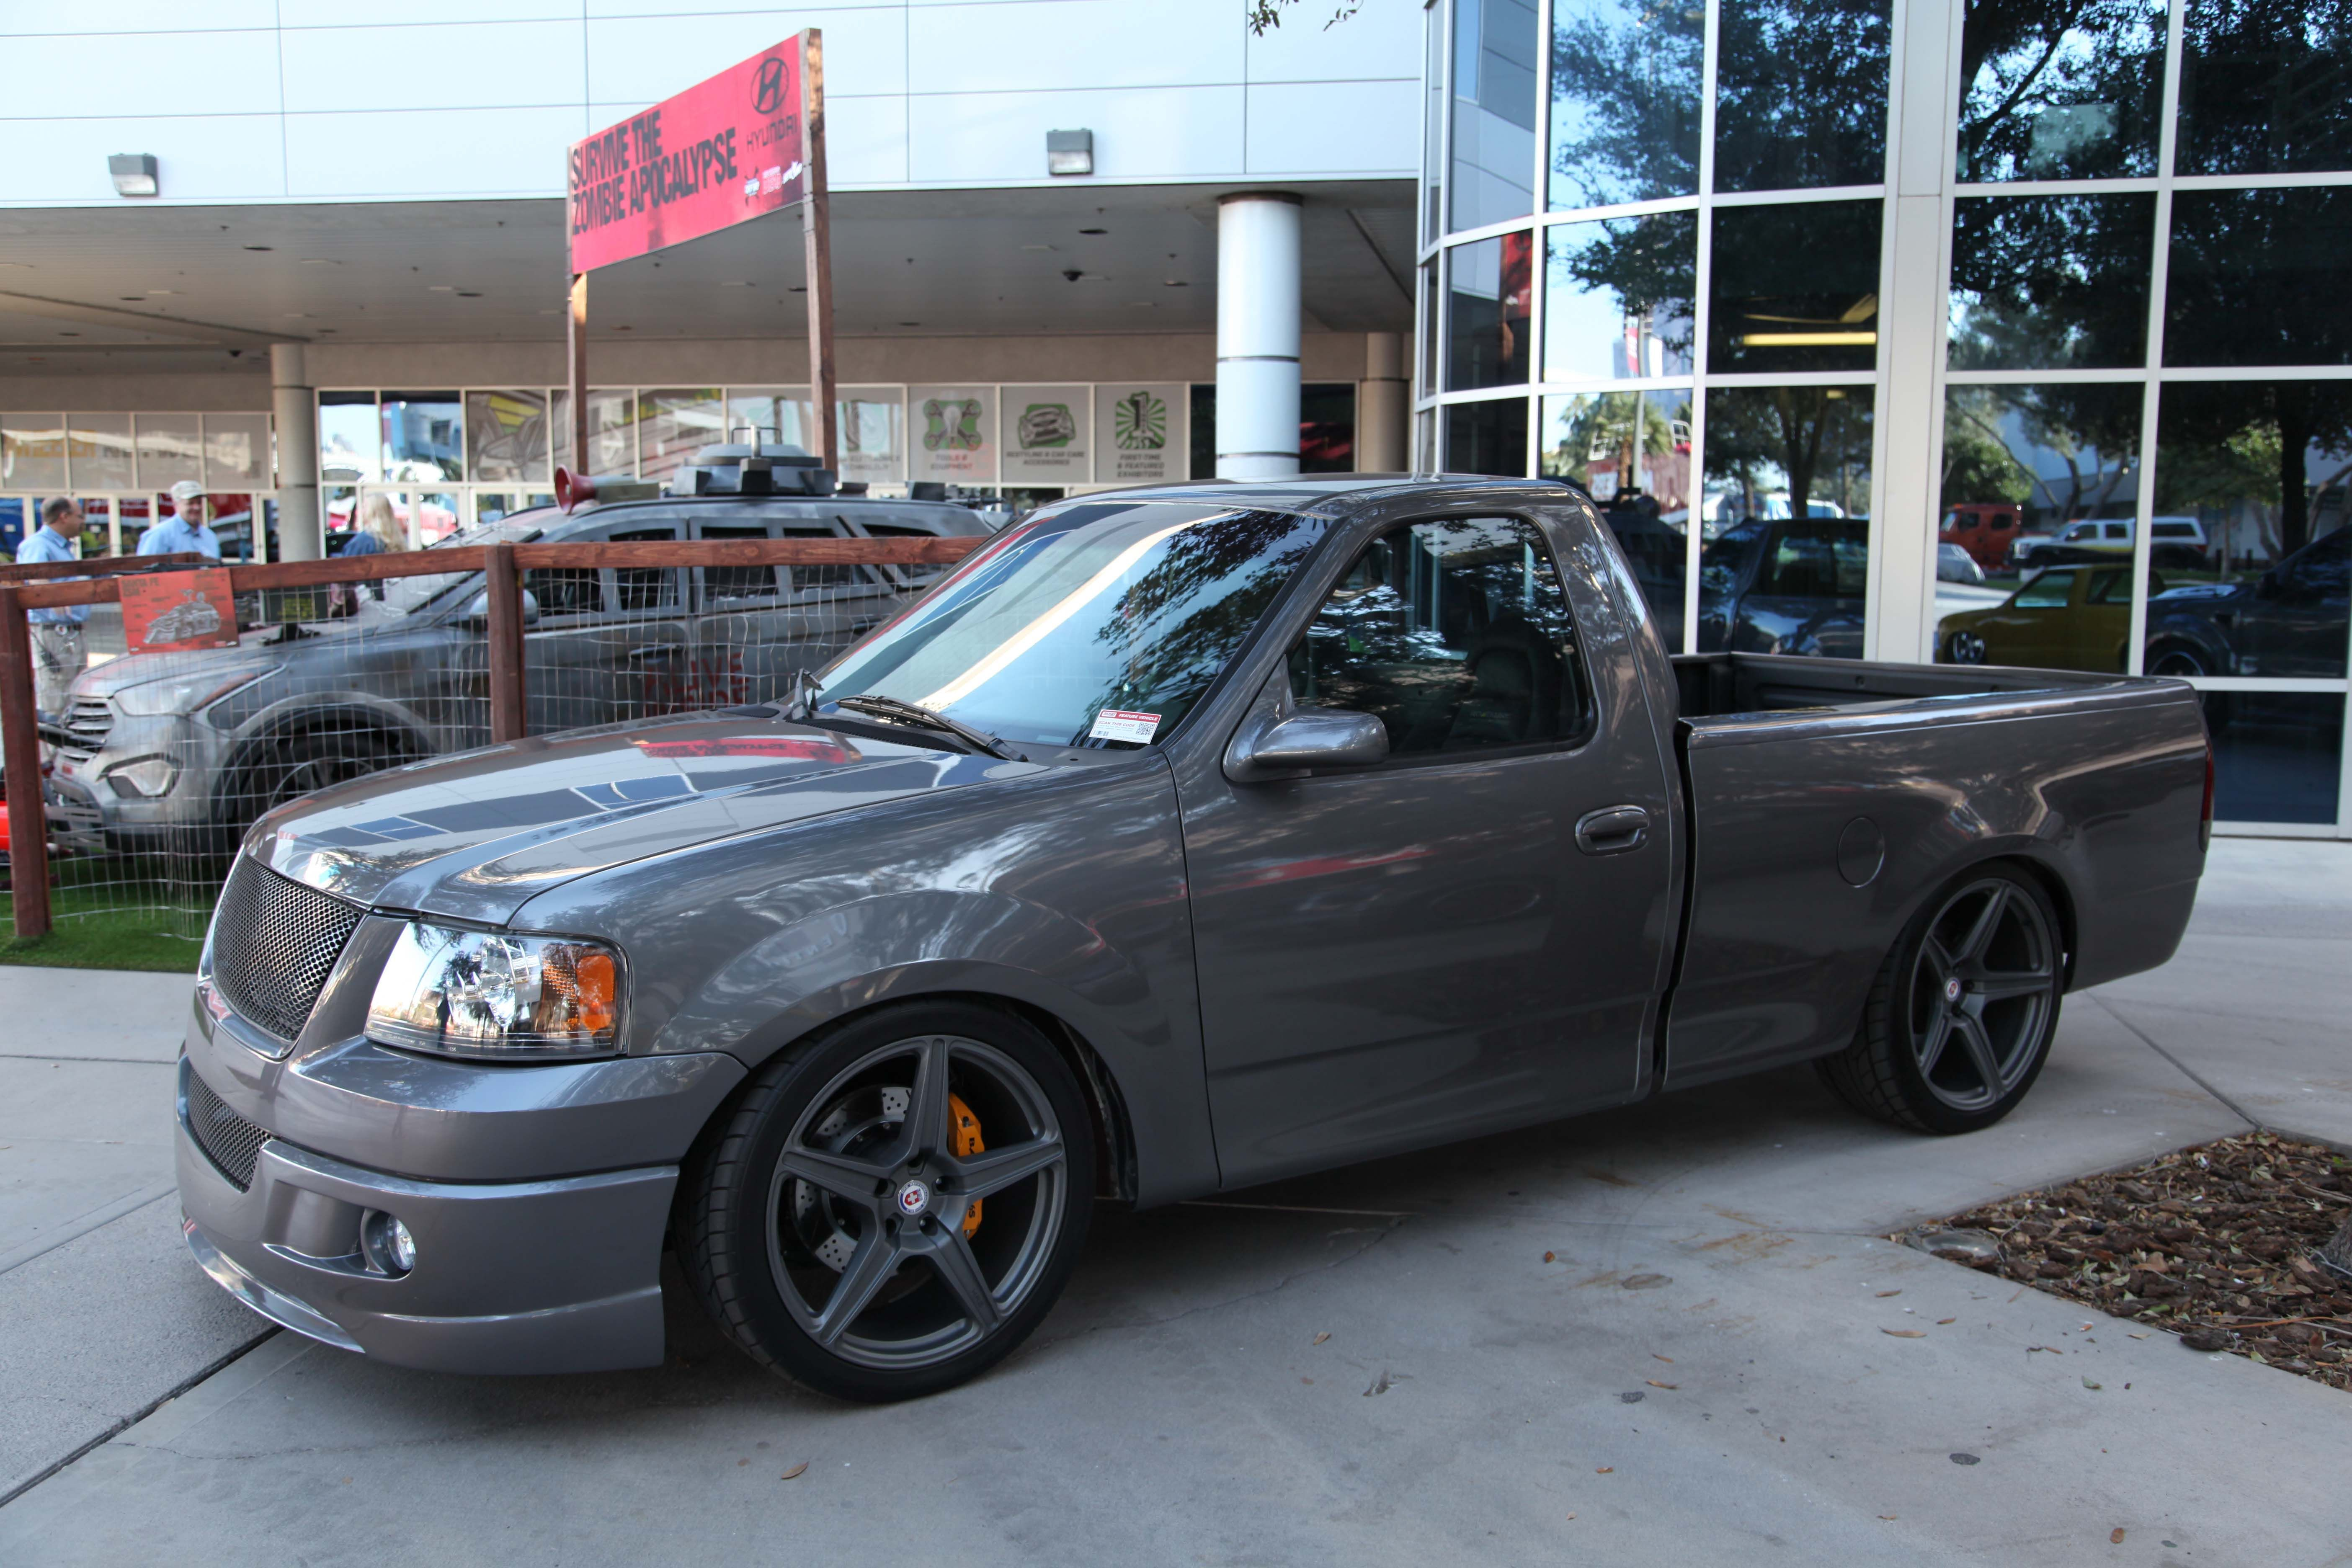 ford lightning | 32V Twin Turbo 5.4L Ford Lightning Project - Pics and Commentary ... | Ford Lightning | Pinterest | Ford lightning Twin turbo and ... & ford lightning | 32V Twin Turbo 5.4L Ford Lightning Project - Pics ... azcodes.com